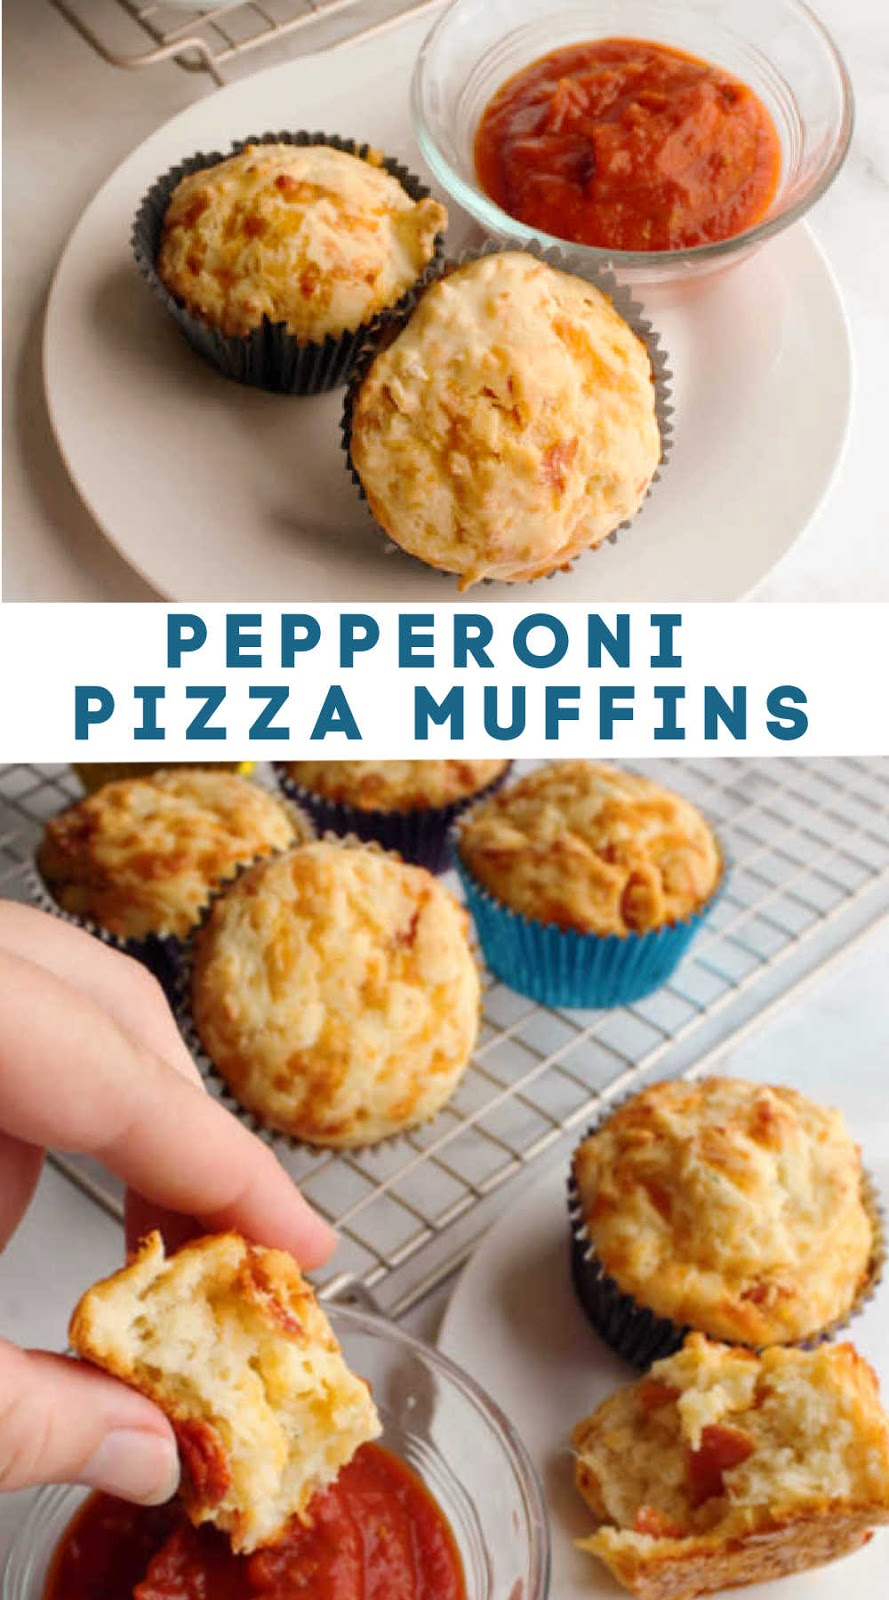 Enjoy pepperoni pizza in muffin form. They are cheesy and filling and super easy to make. While good on their own, they are even better dipped in a side of pizza sauce. Whether you make them for your kid's lunchbox, as an after school snack or for a study group, just be sure to make some.